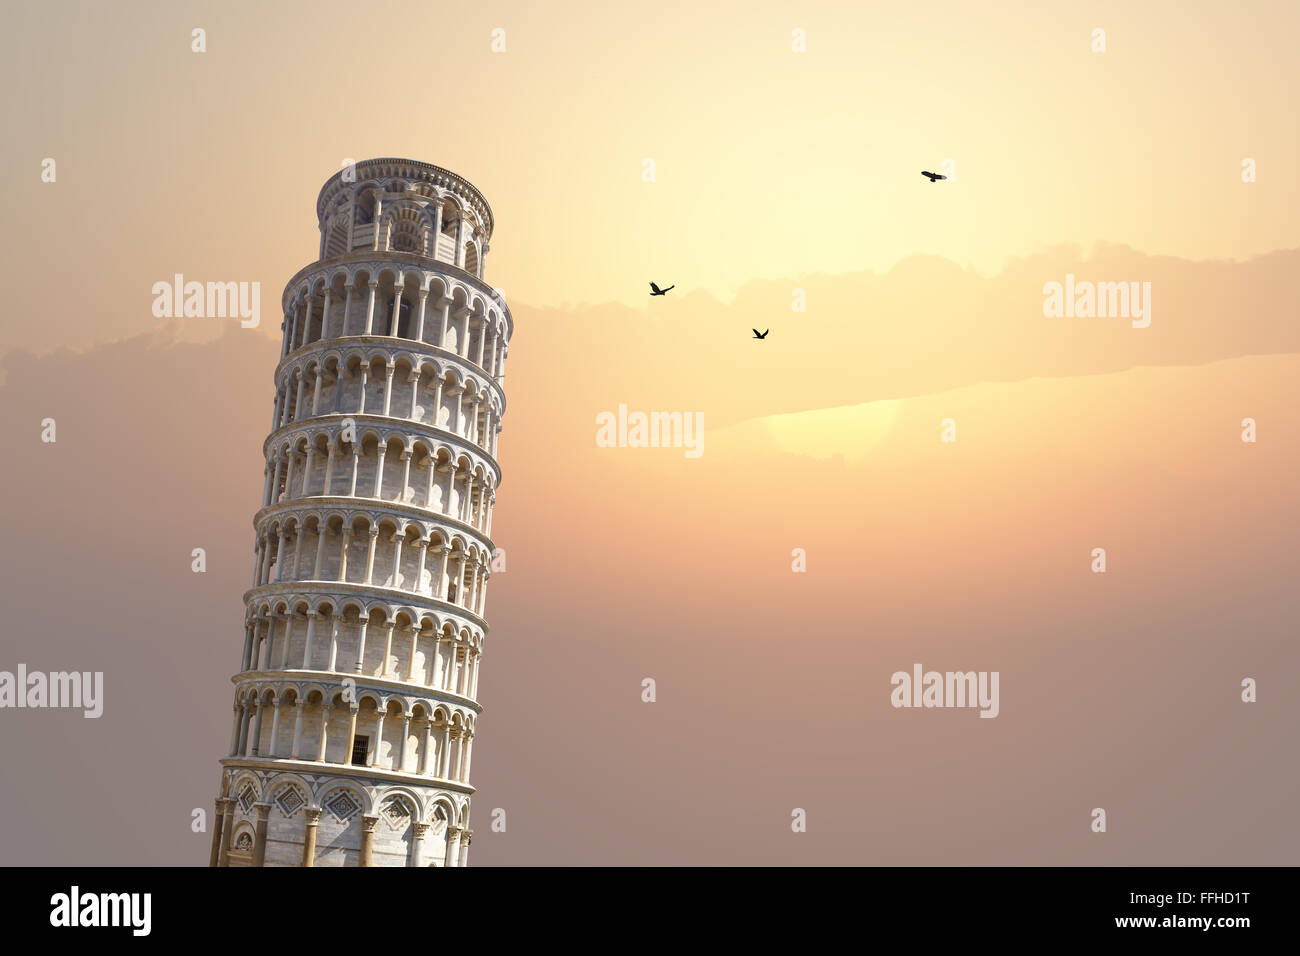 View of historical Pisa Tower in Cathedral Square of Pisa, Italy, on